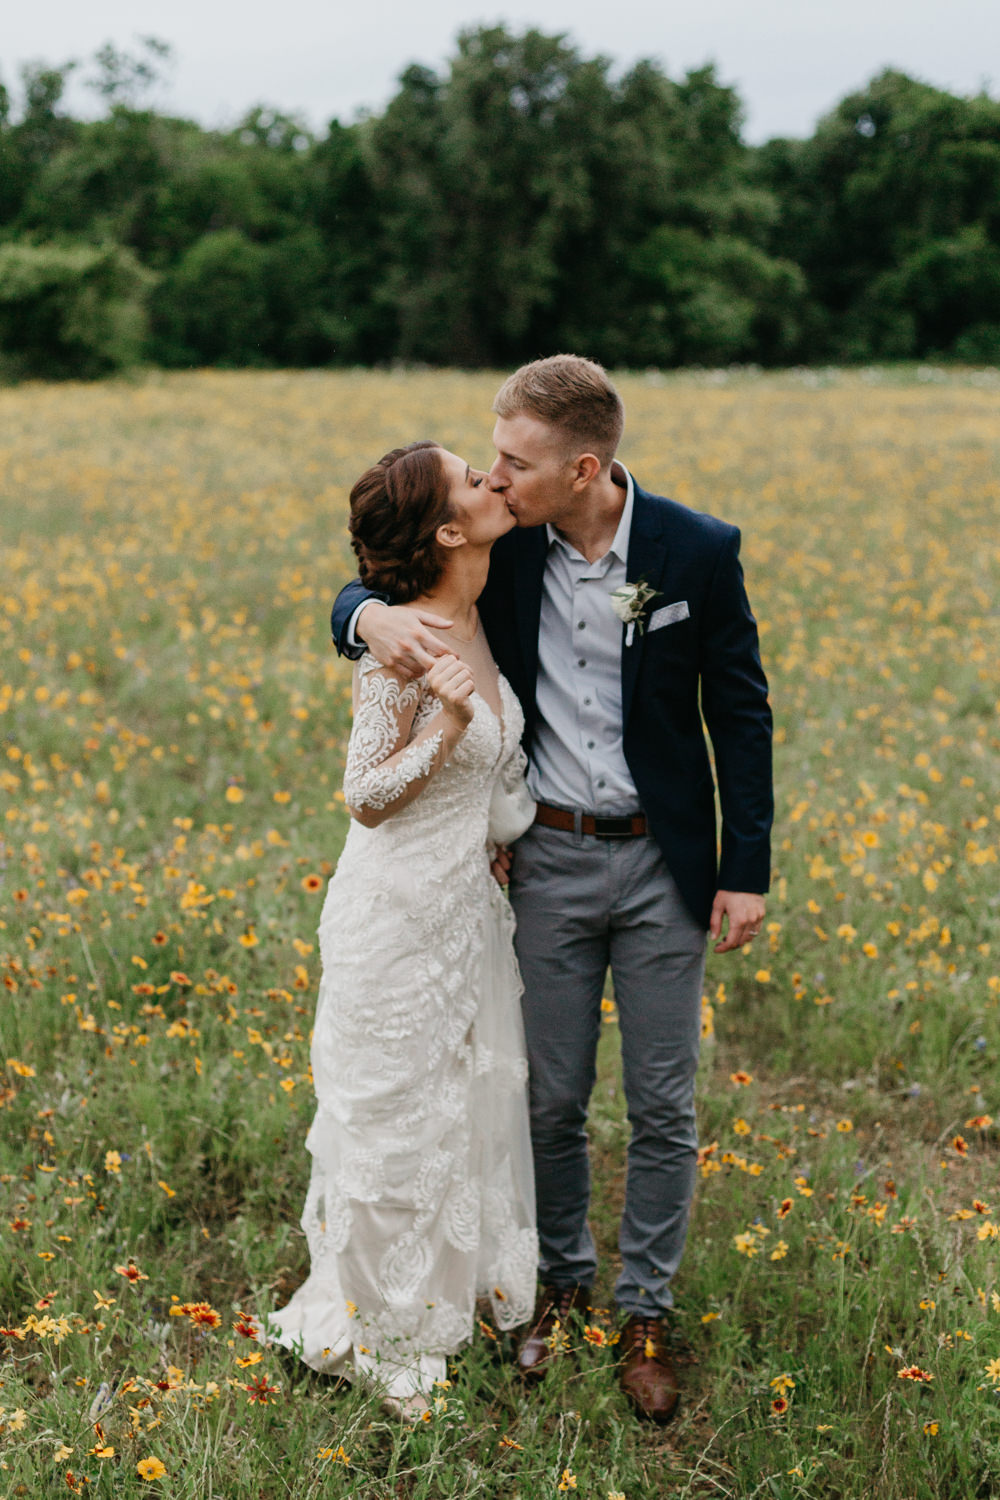 HaileyDylan_Austin Elopement Photographer Austin Wedding Photographer-173.jpg